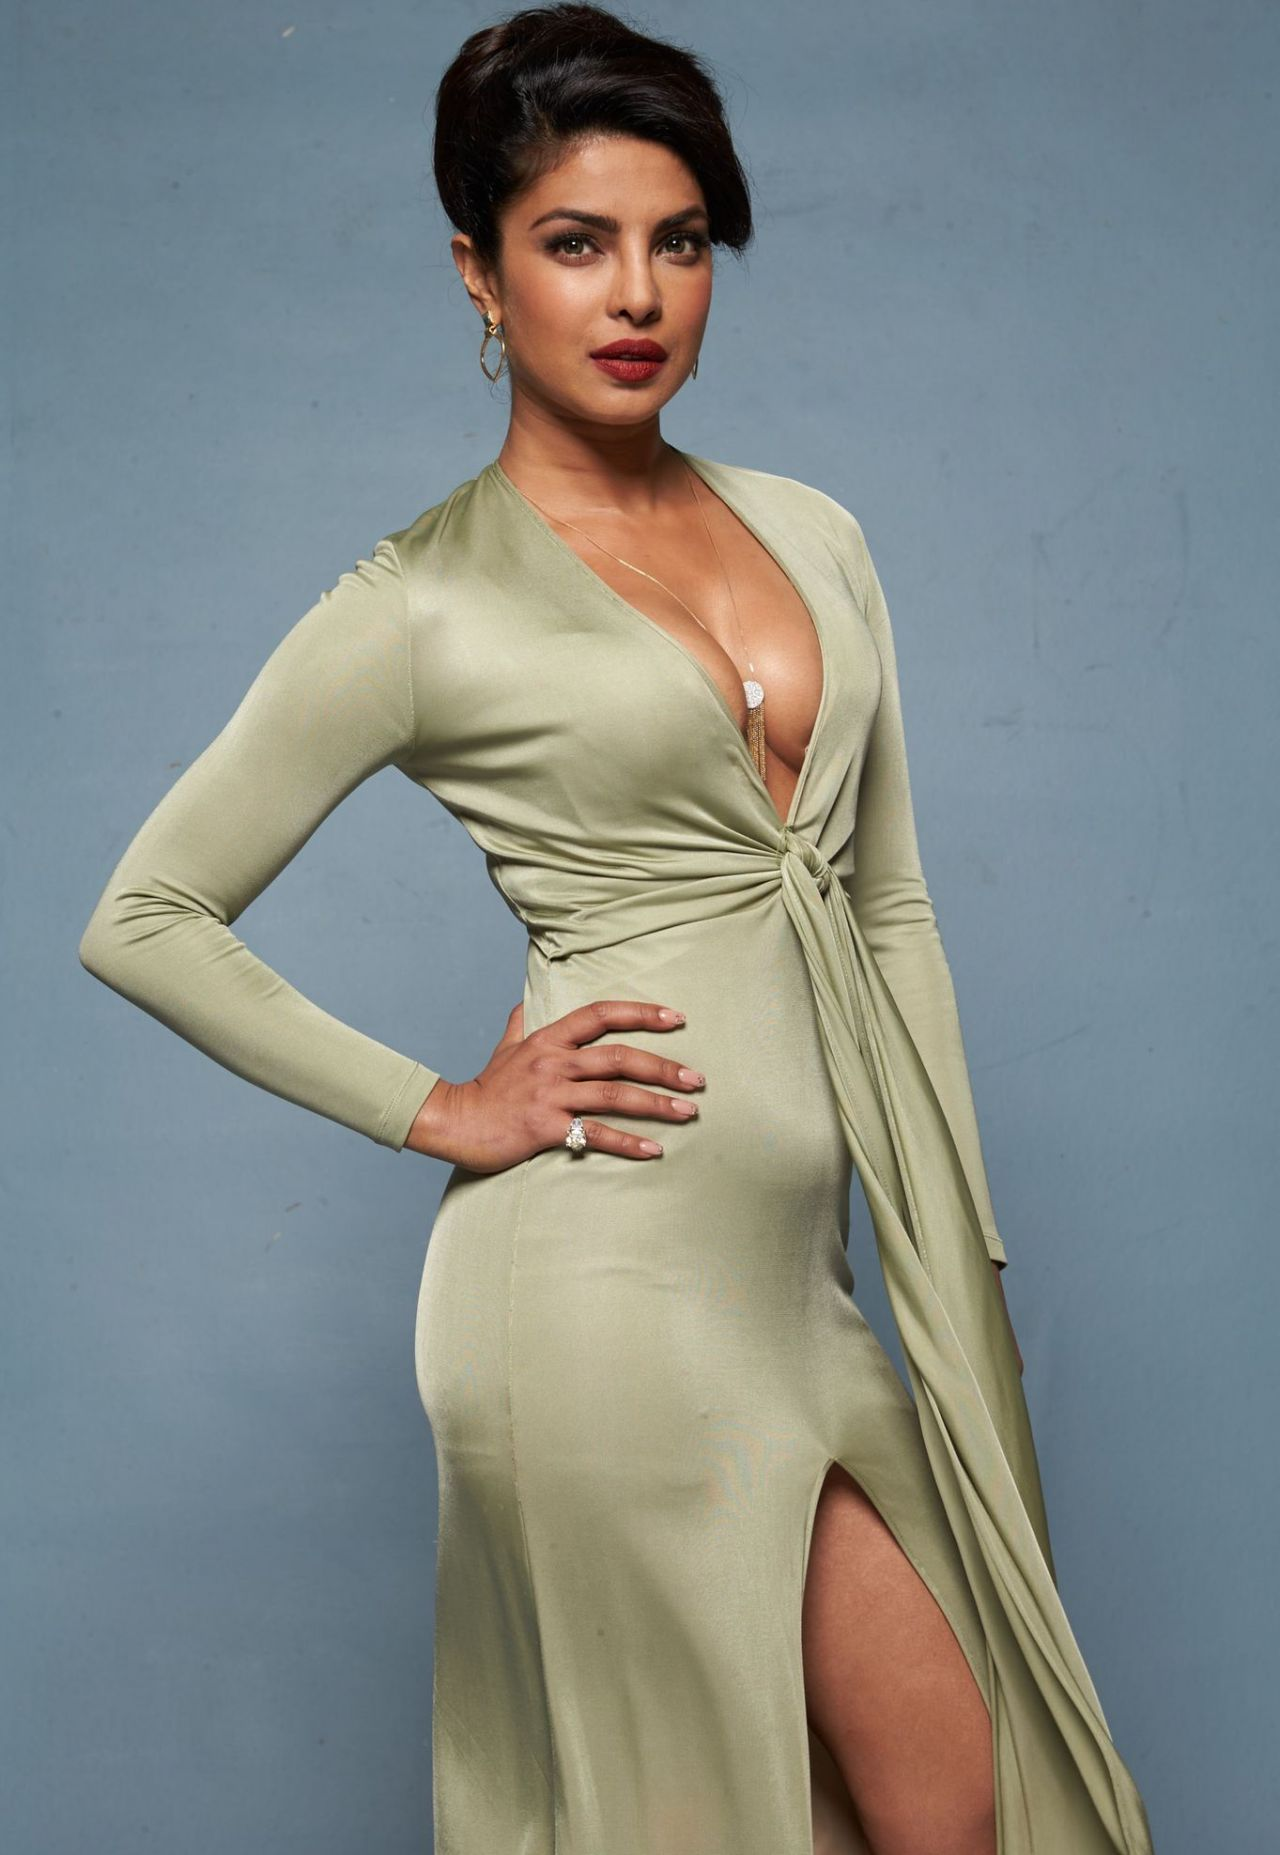 priyanka chopra - photo #29